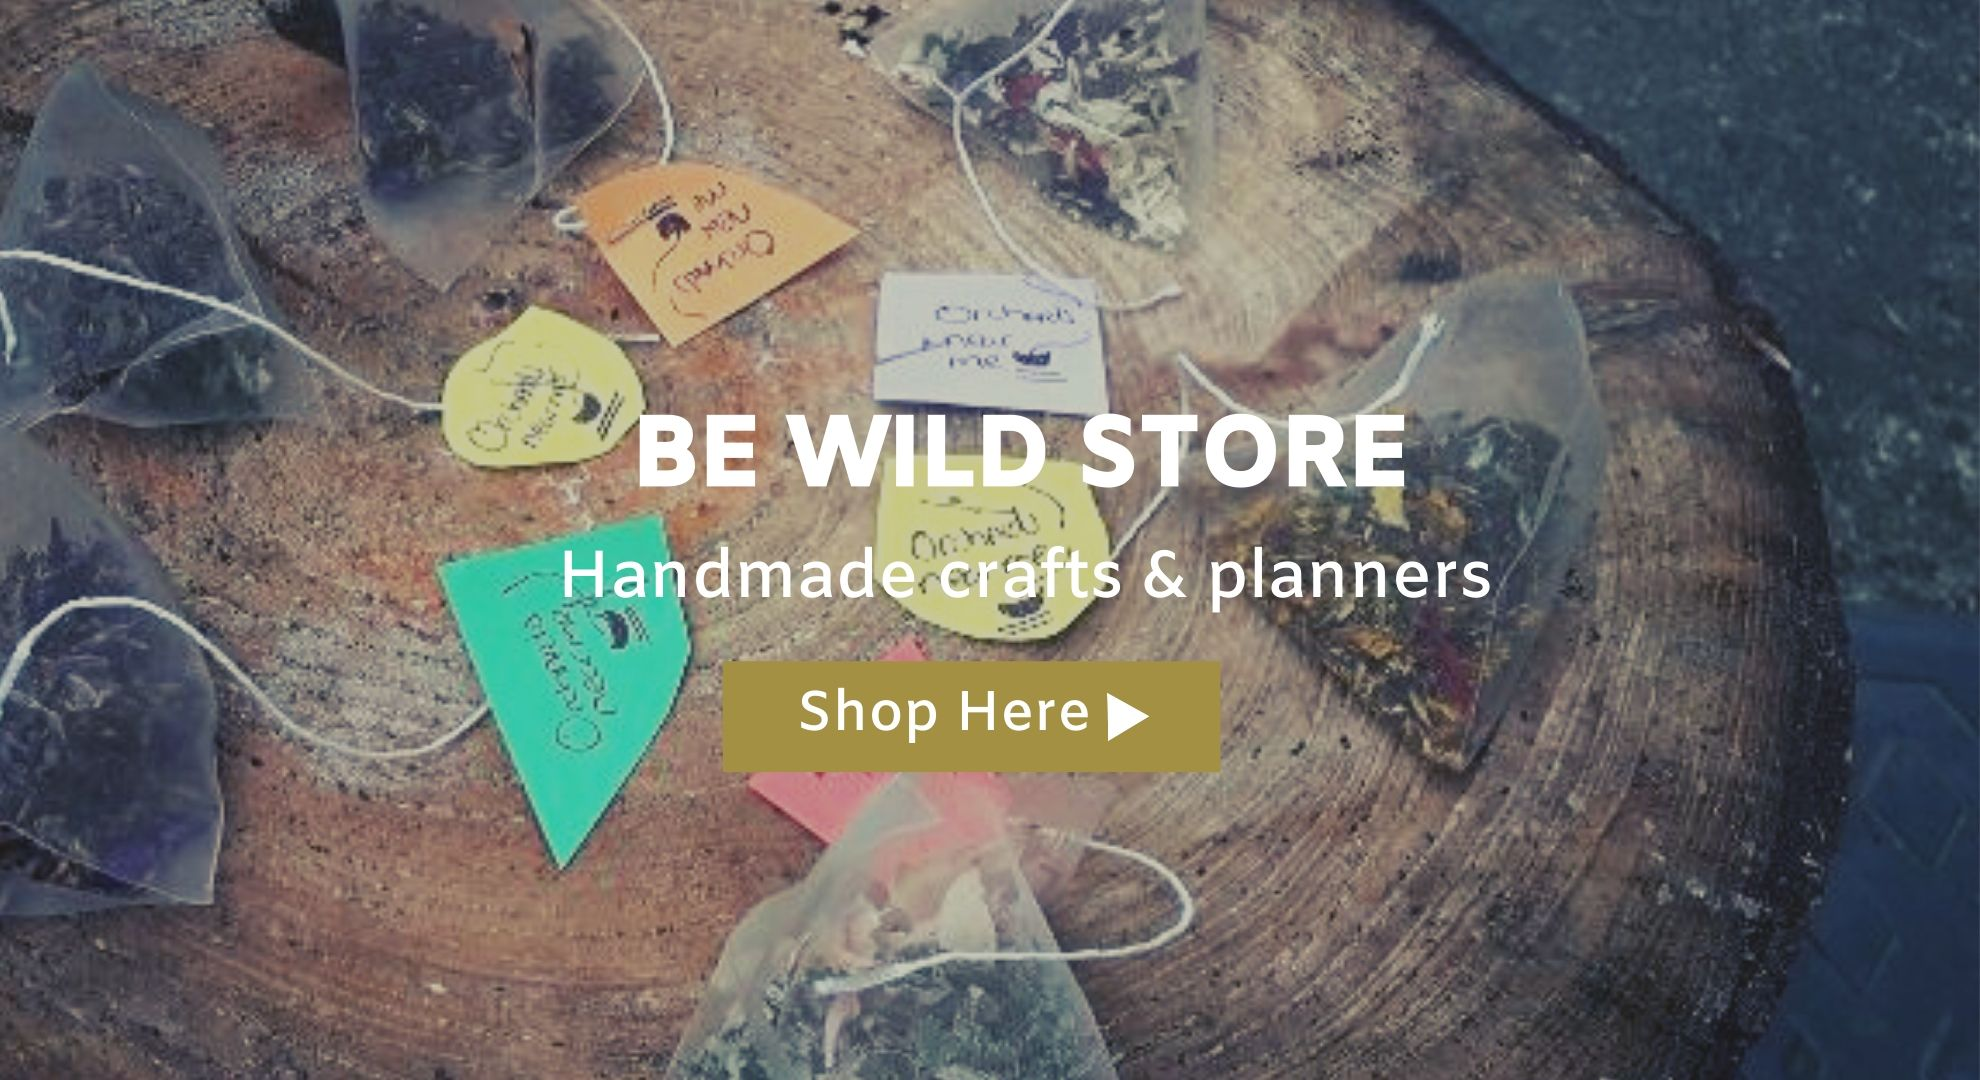 be-wild-store-handmade-crafts-and-planners